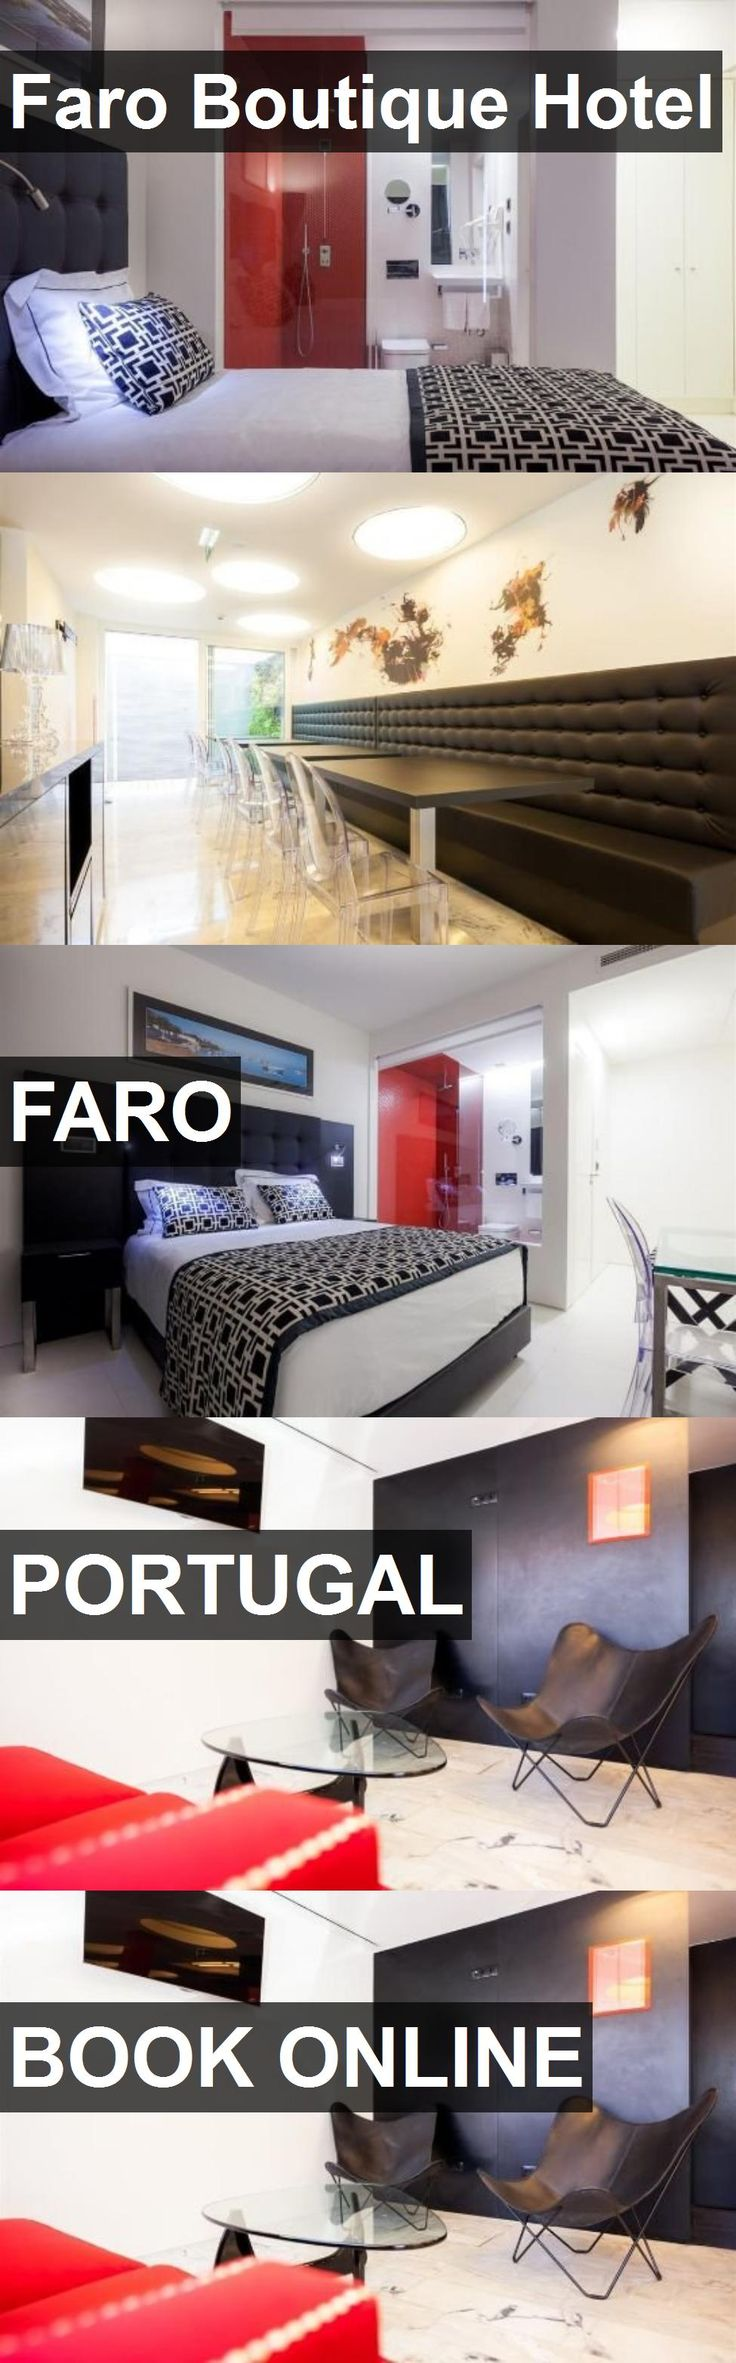 Faro Boutique Hotel in FARO, Portugal. For more information, photos, reviews and best prices please follow the link. #Portugal #FARO #travel #vacation #hotel